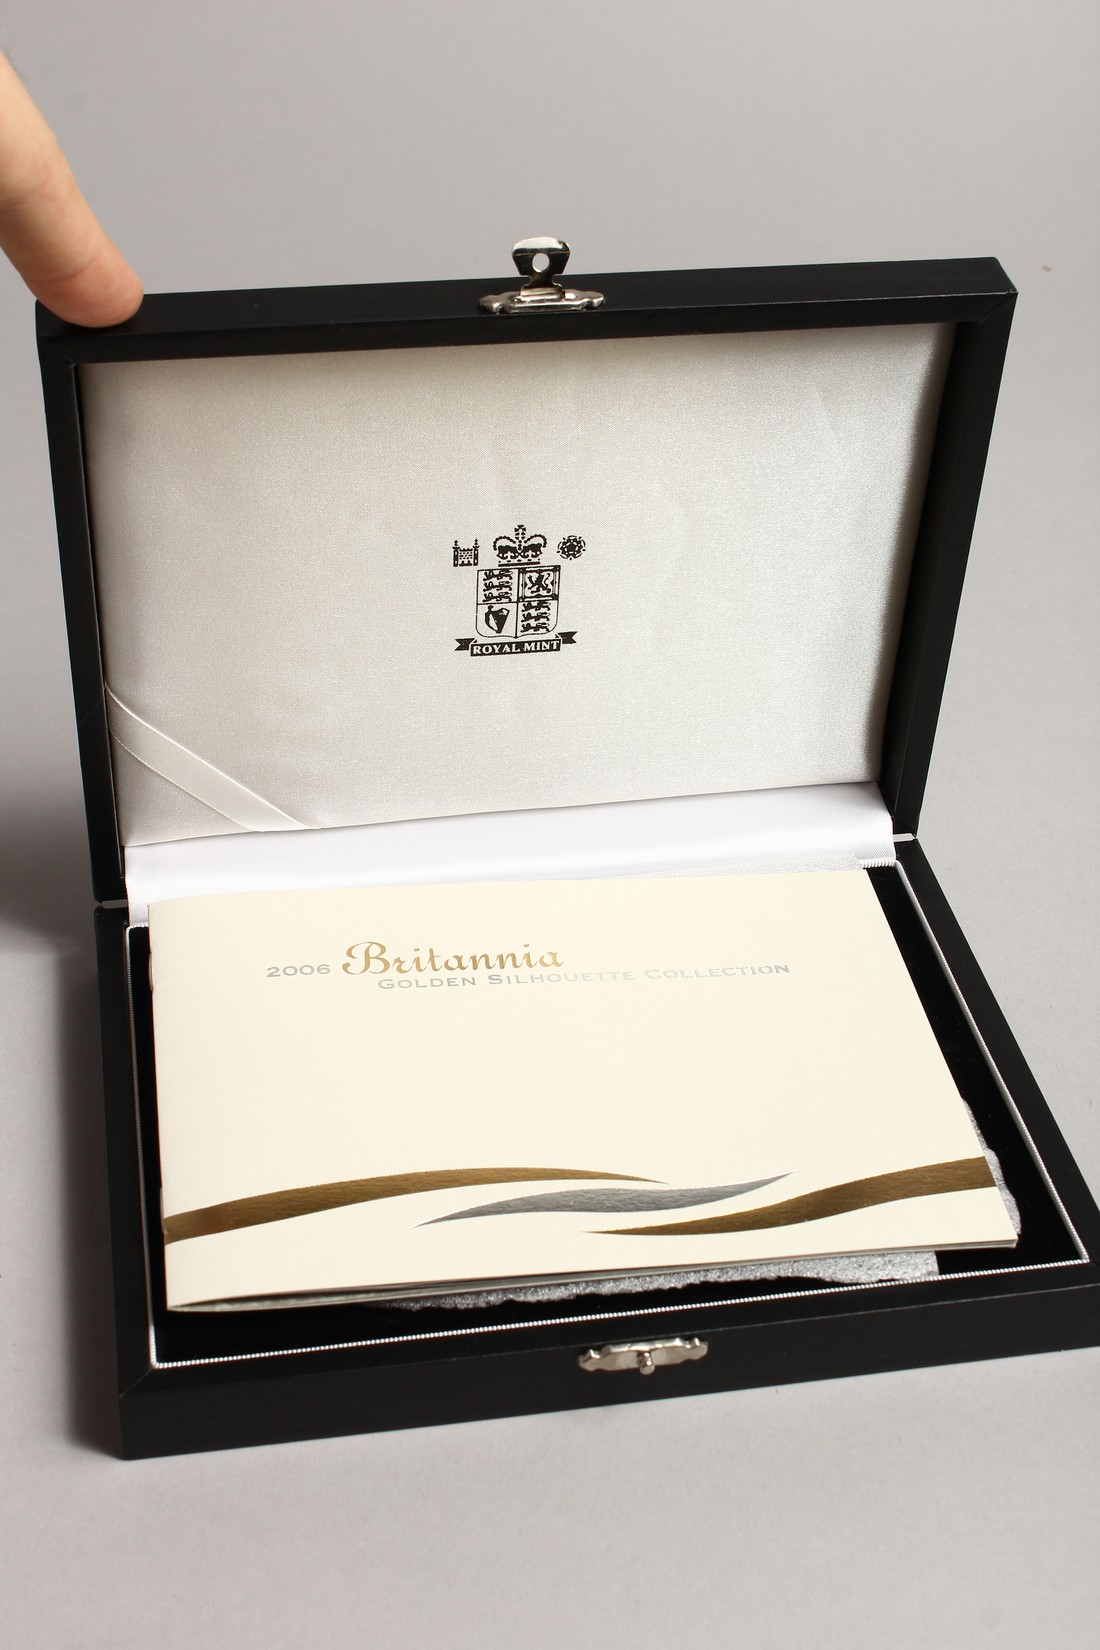 THE 2006 BRITAINNIA SILHOUETTE COLLECTION, silver and gold proof set, no. 0191 of 3000 issued with - Image 3 of 3